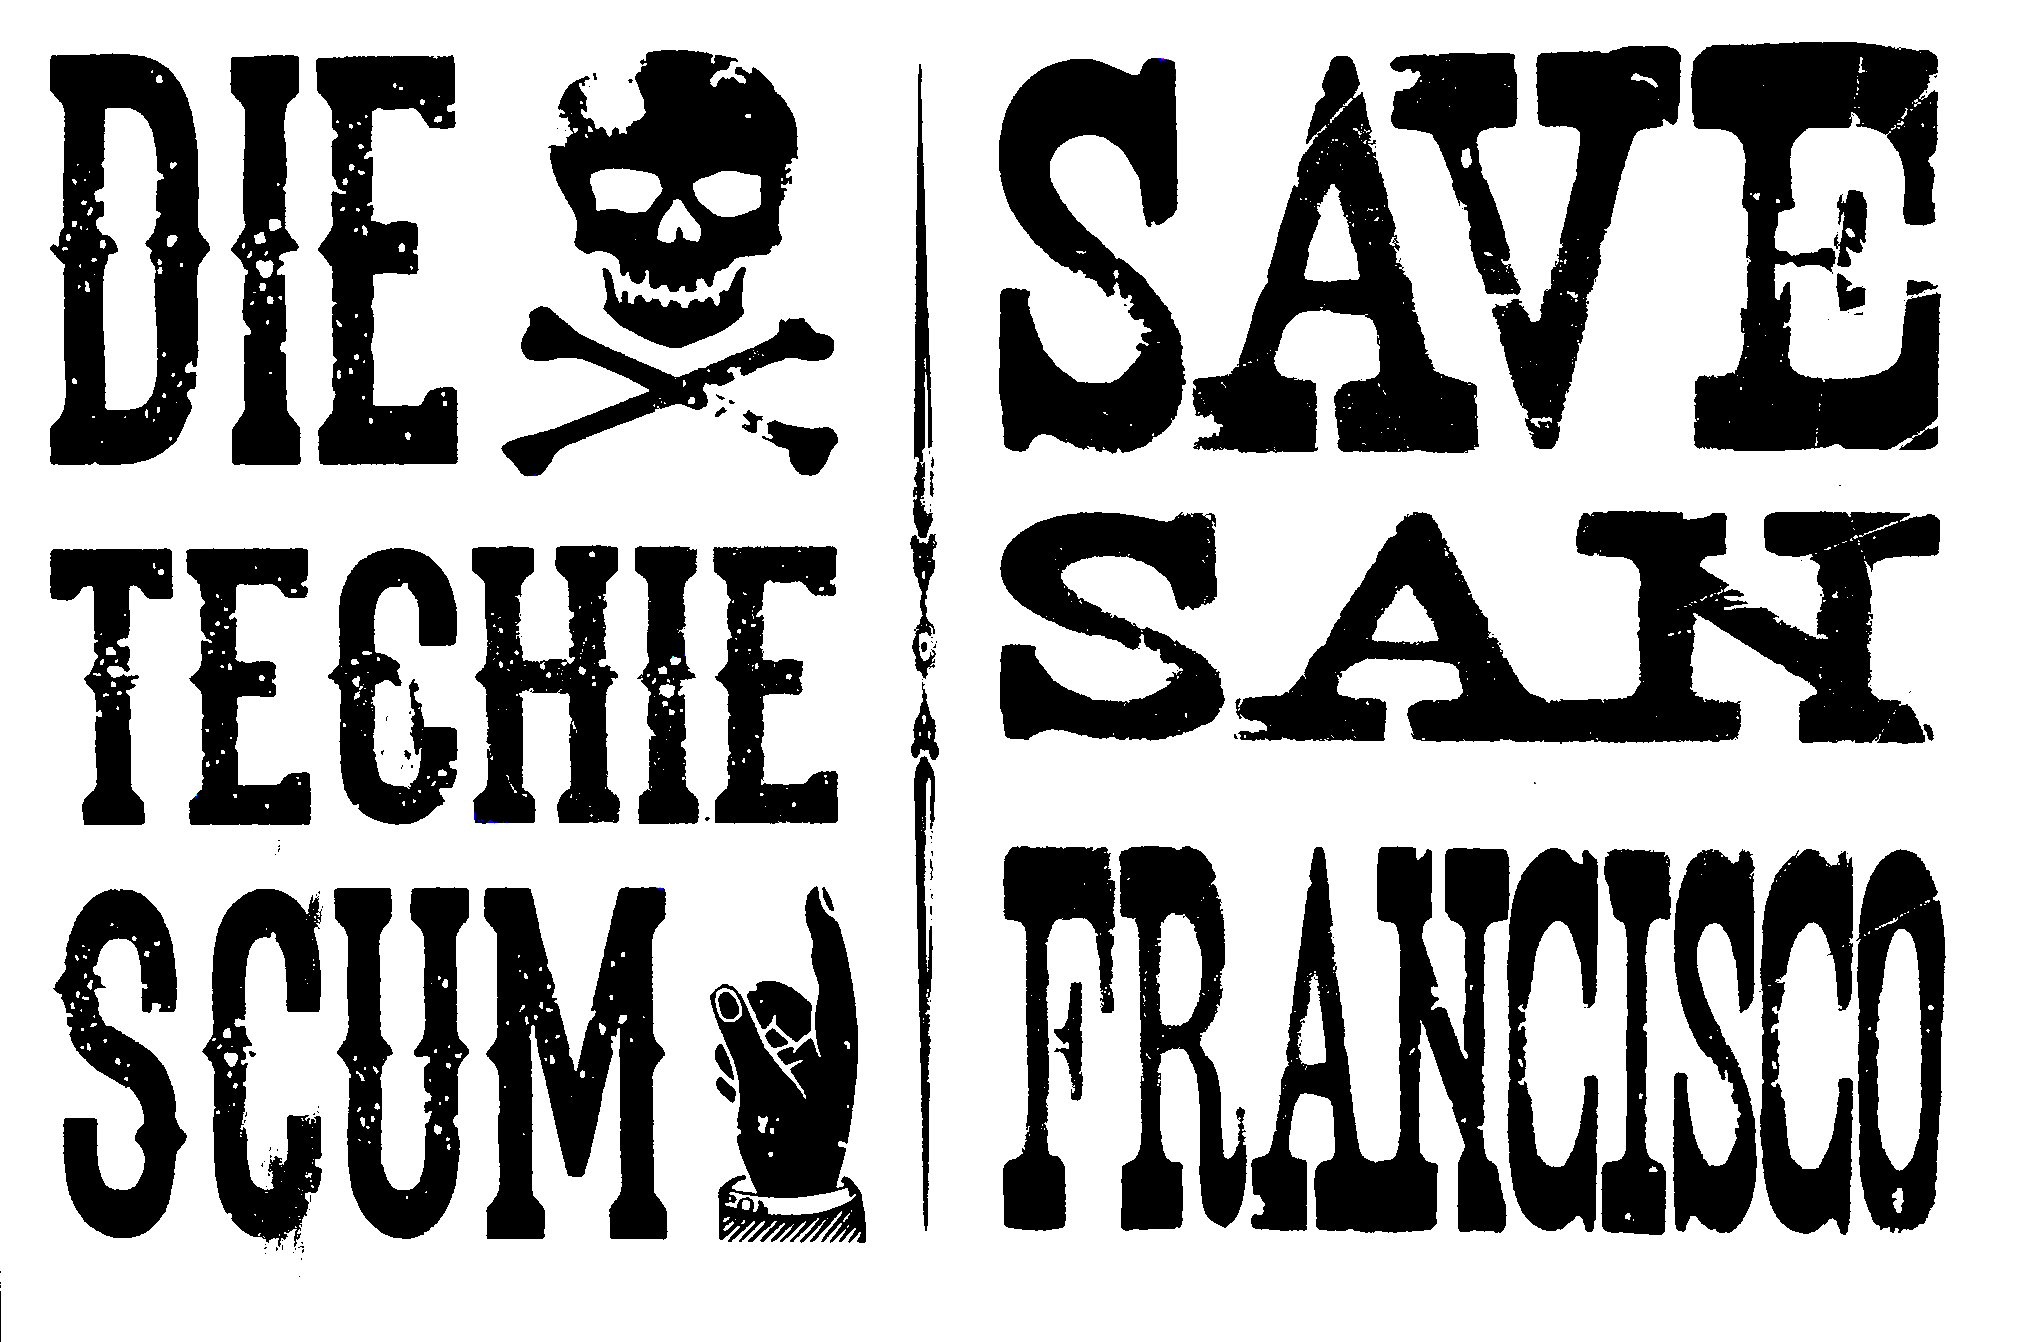 Die Techie Scum! Save San Francisco!